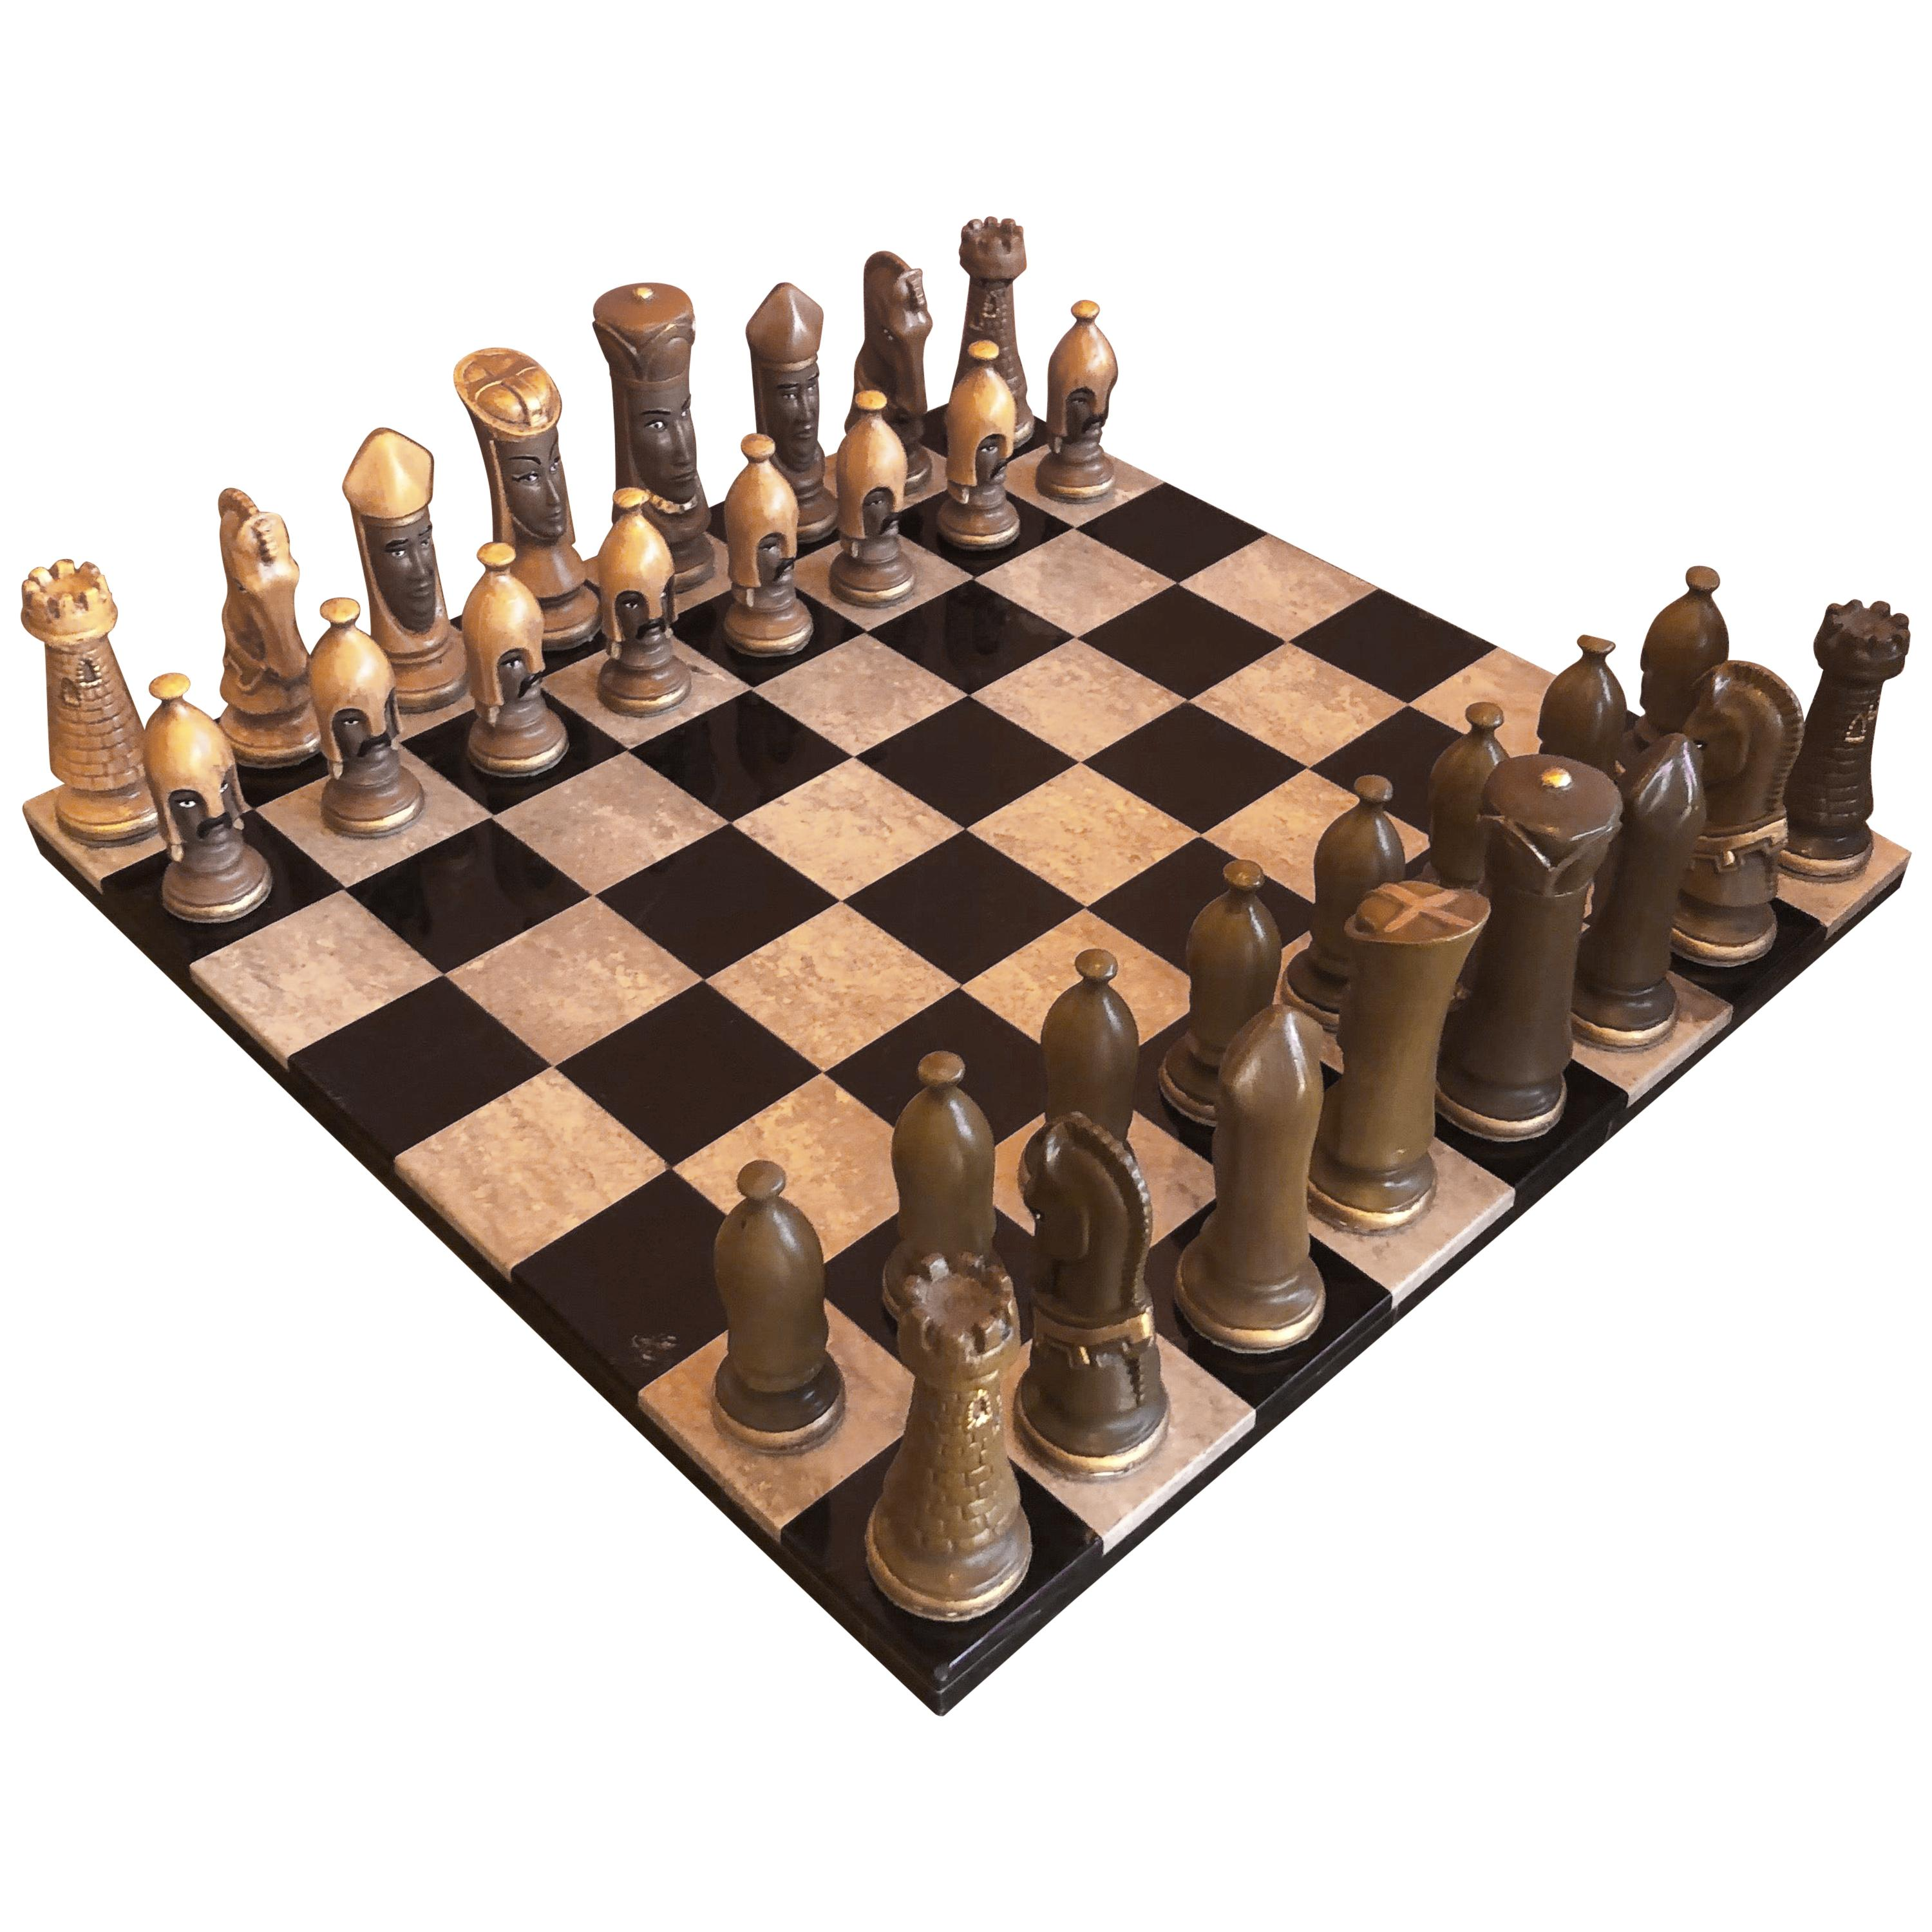 Medieval Chess Set by Duncan on Onyx Board